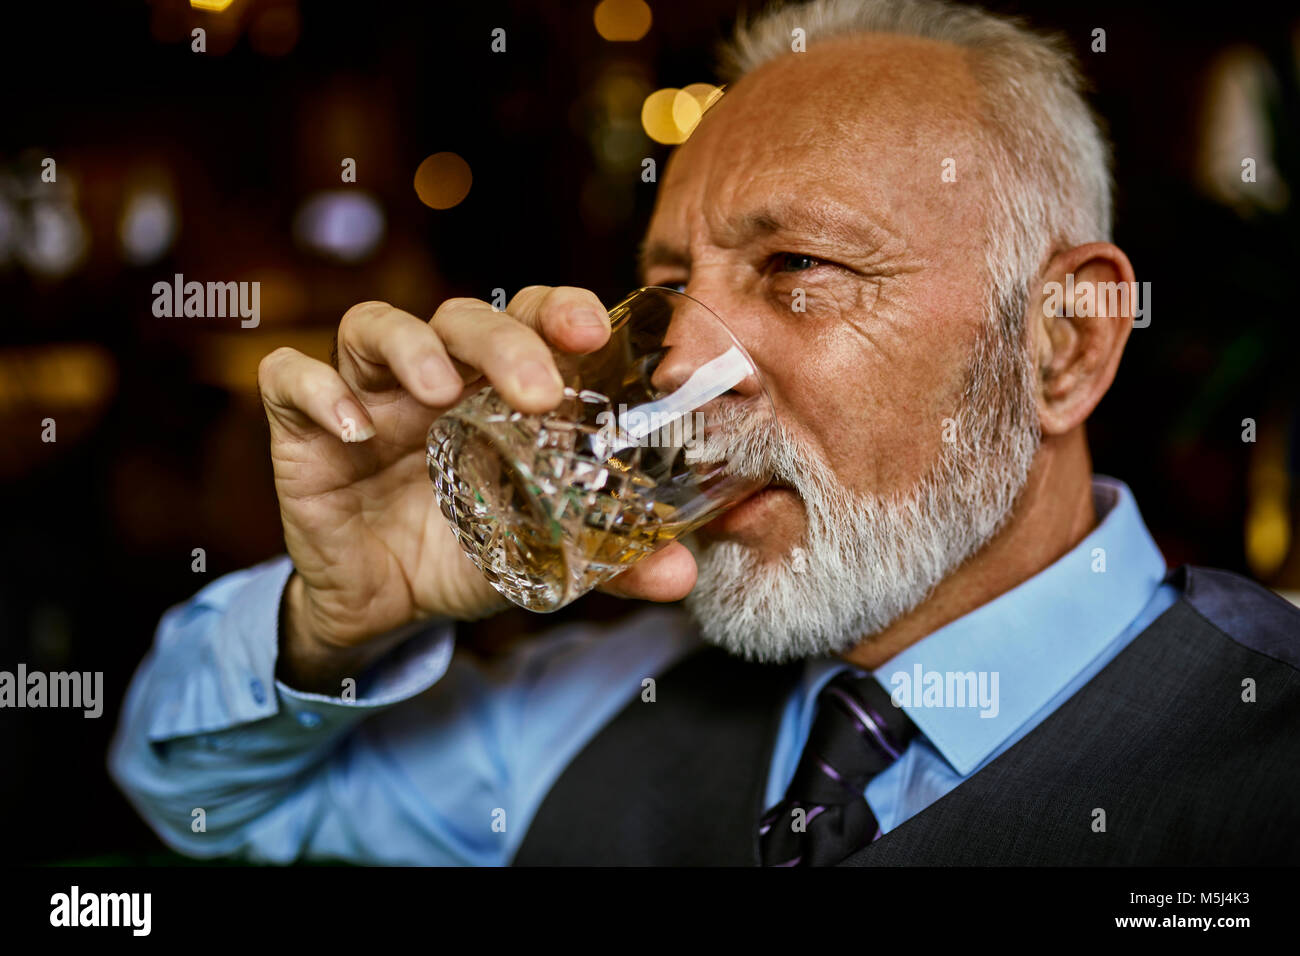 Portrait of elegant senior man drinking from tumbler - Stock Image